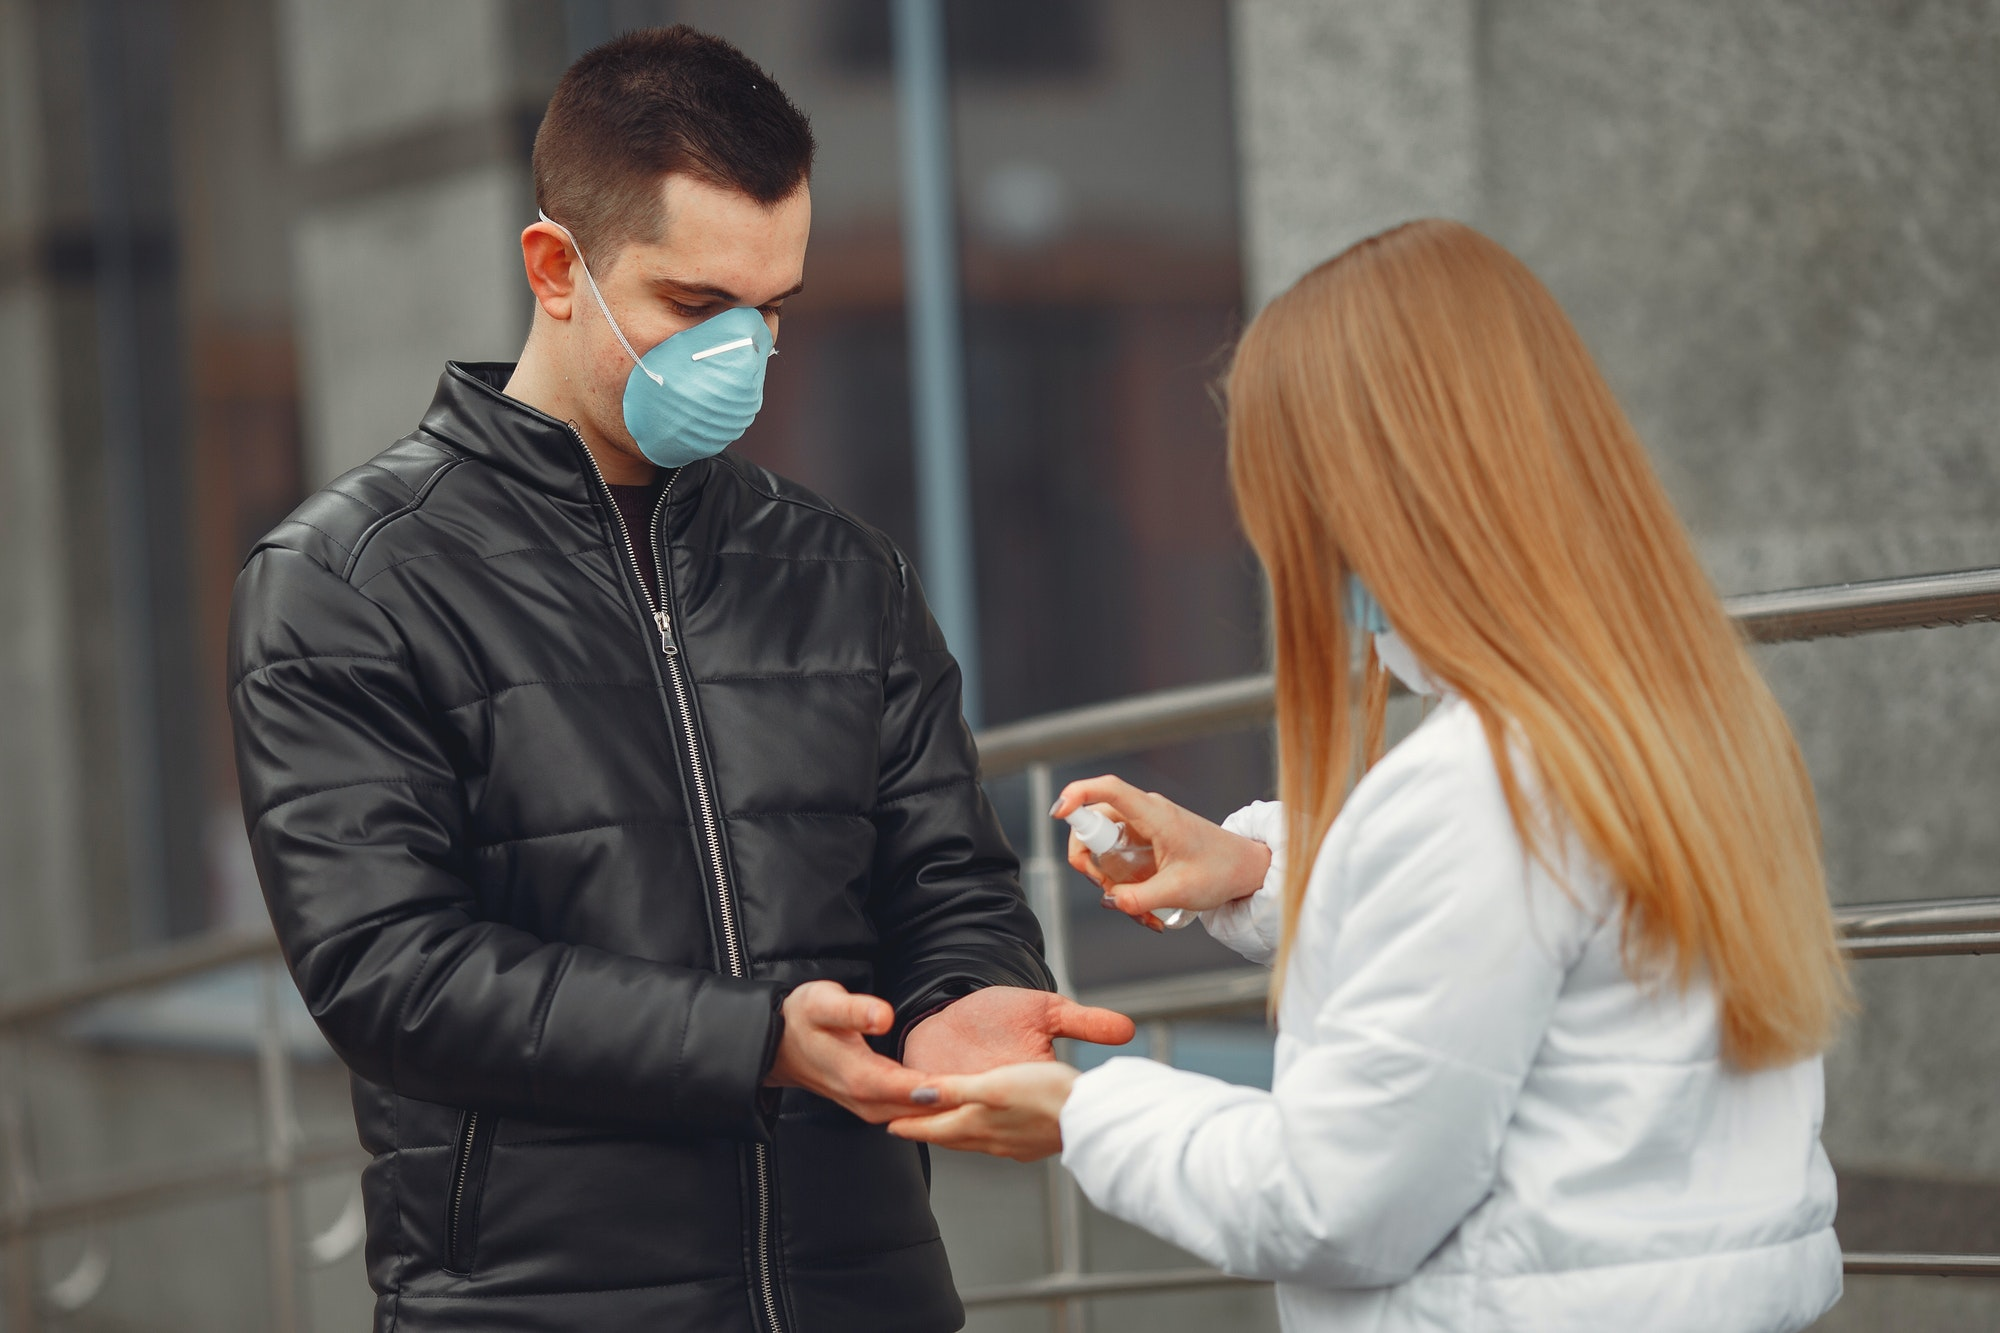 Young people wearing protective masks are spraying hand sanitizer